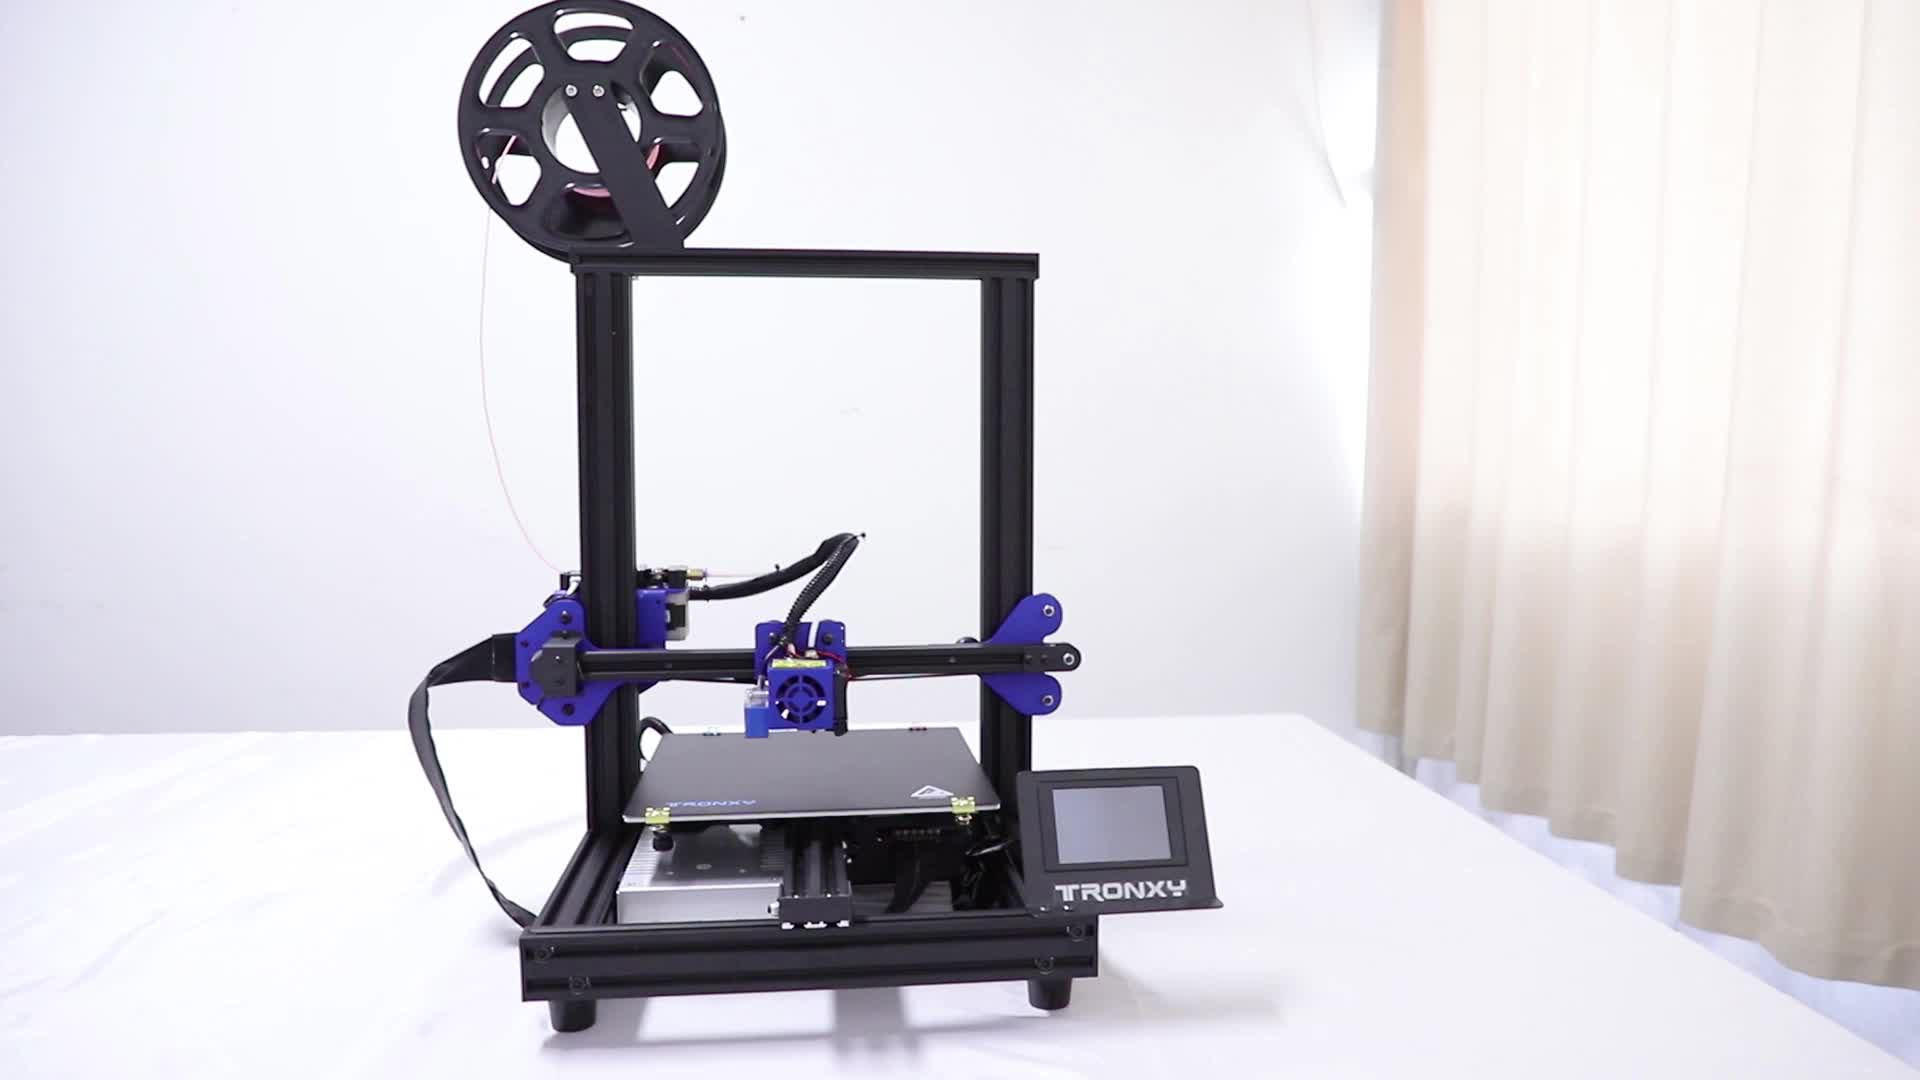 Multifunctional fast assembled printer 3d TRONXY XY-2 PRO children toys small build size educational 3d printer